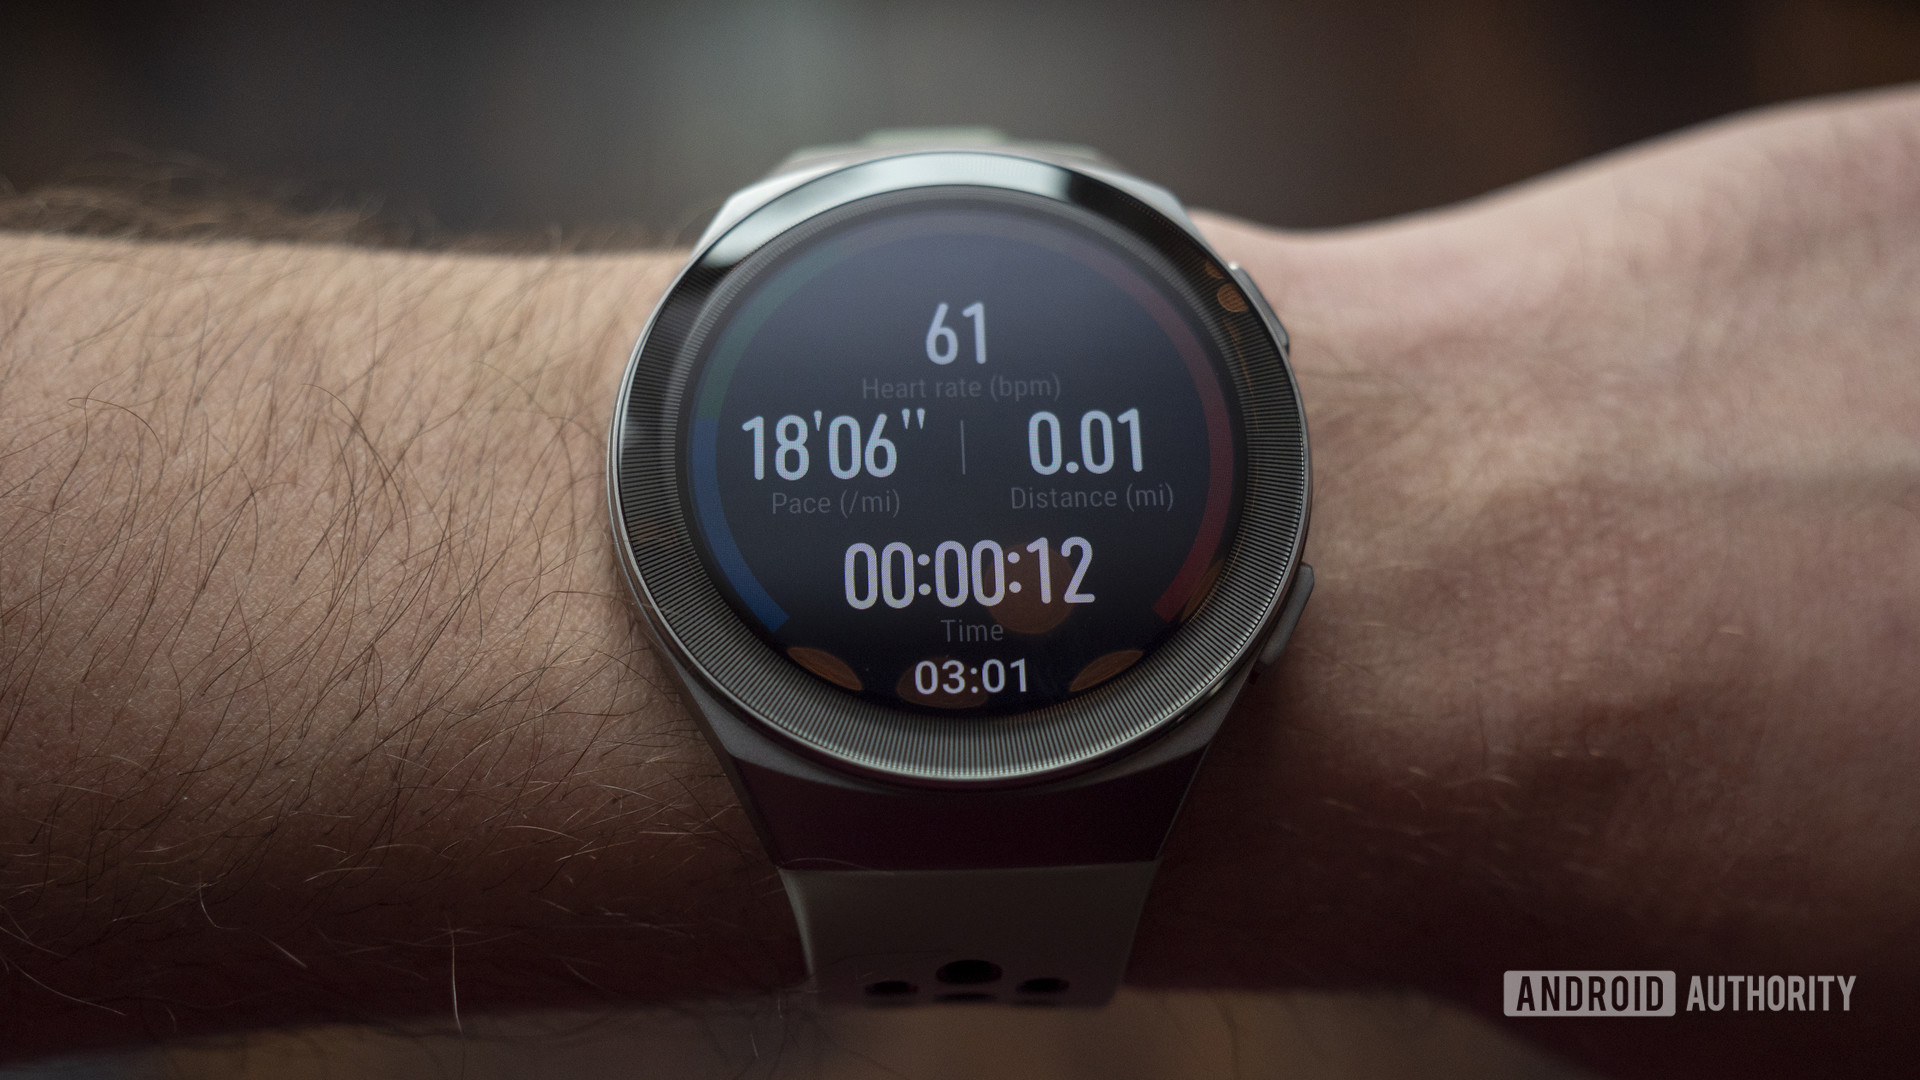 huawei watch gt 2e review running activity during workout